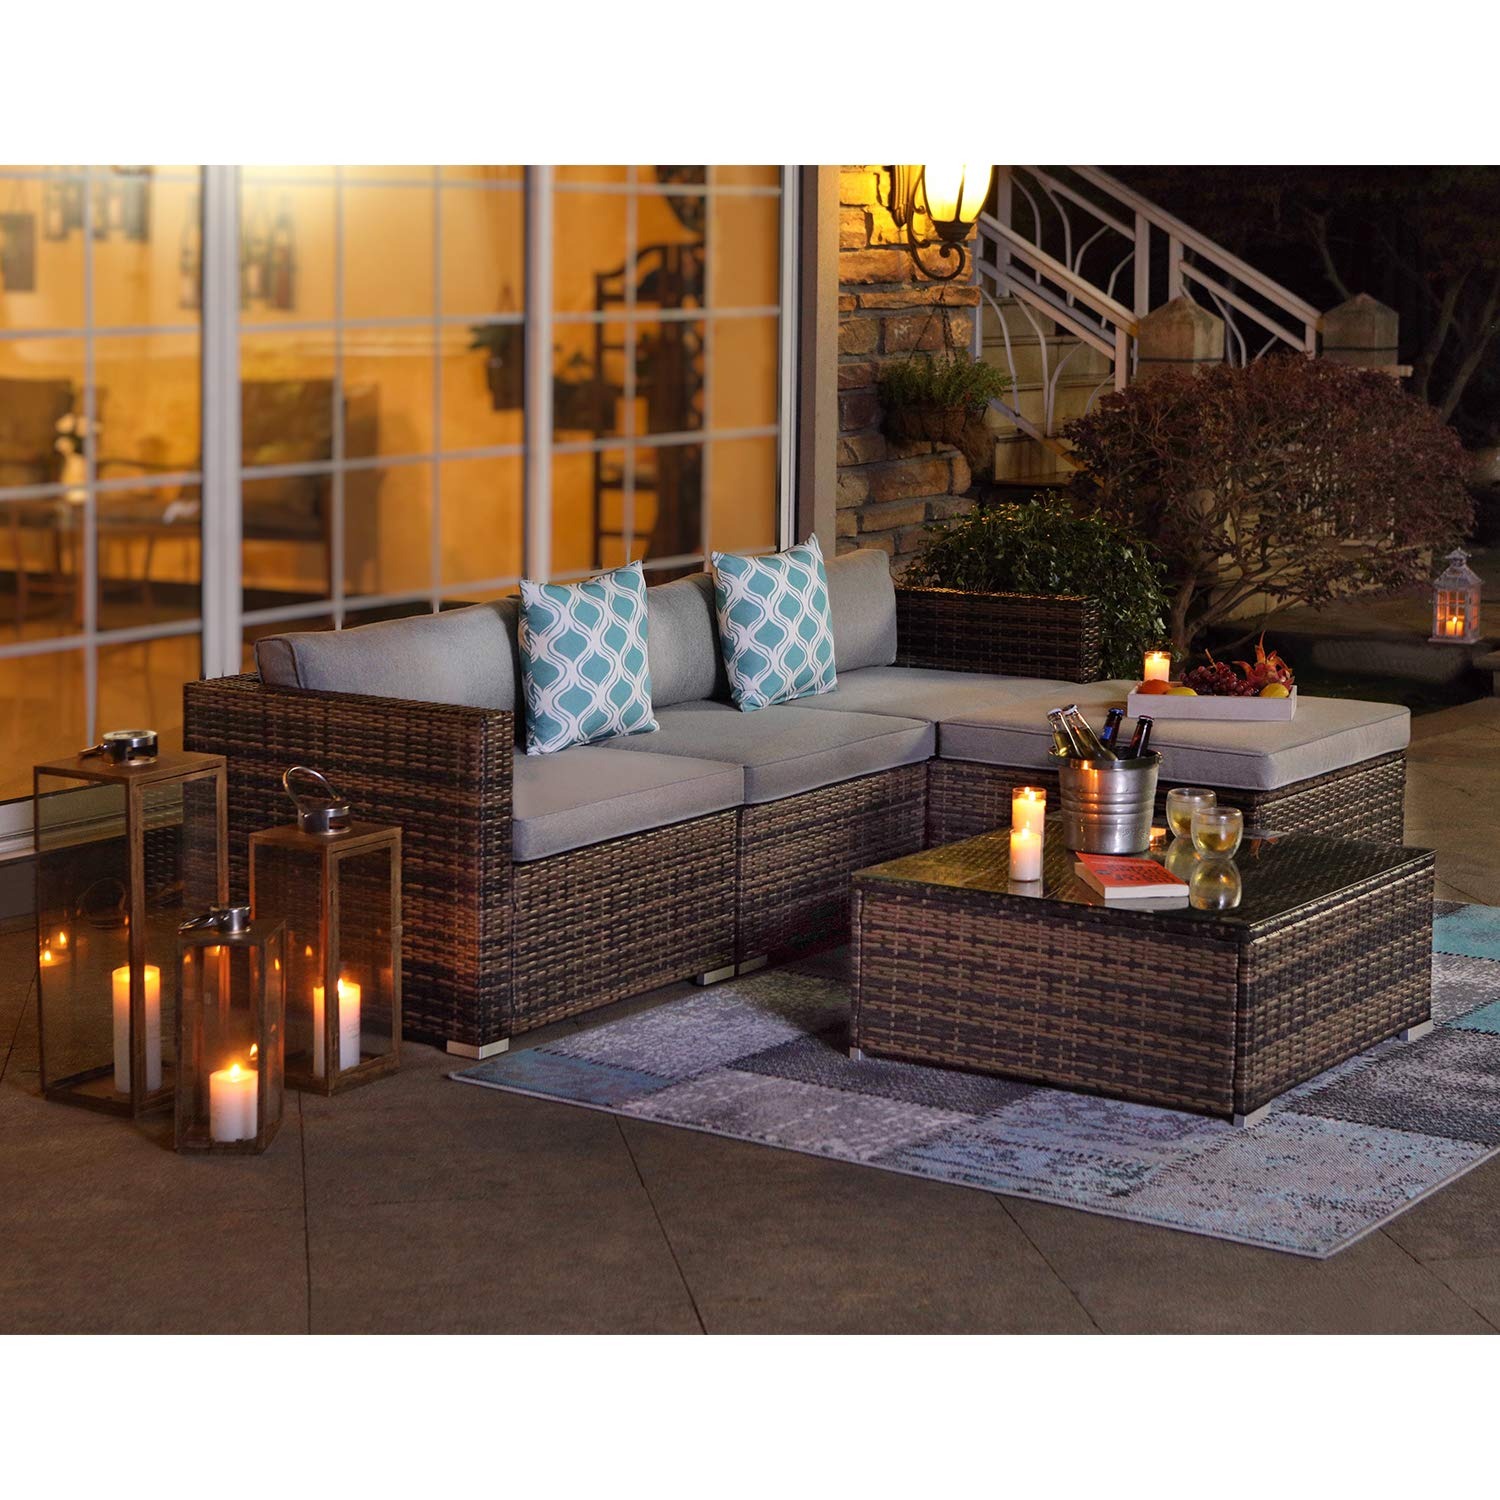 Amazon.com: COSIEST 5-Piece Outdoor Furniture All-Weather ...